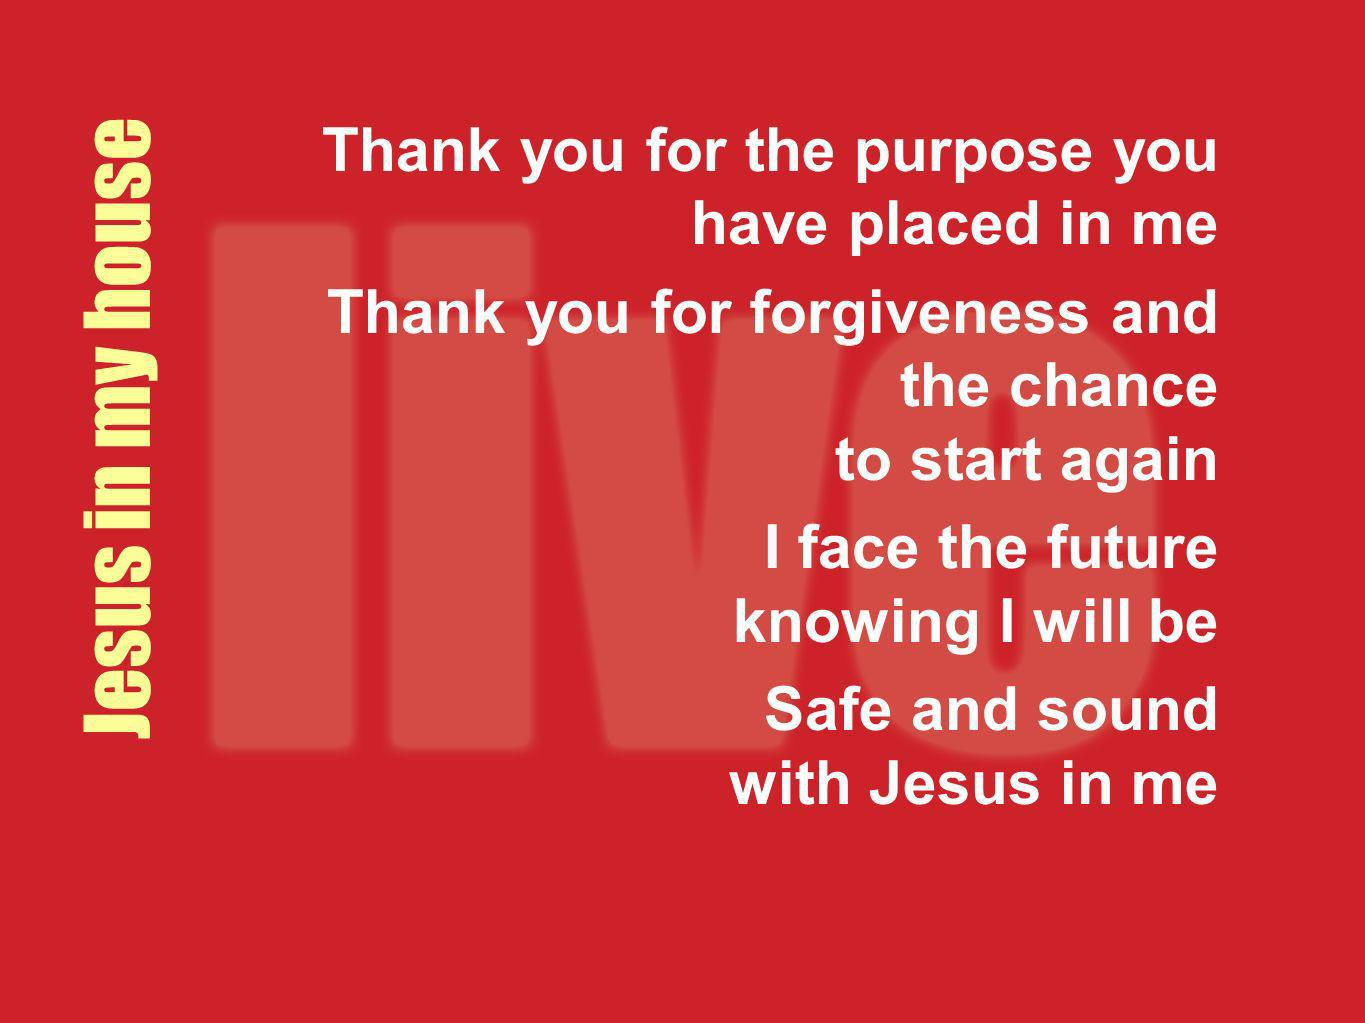 Jesus in my house Thank you for the purpose you have placed in me Thank you for forgiveness and the chance to start again I face the future knowing I